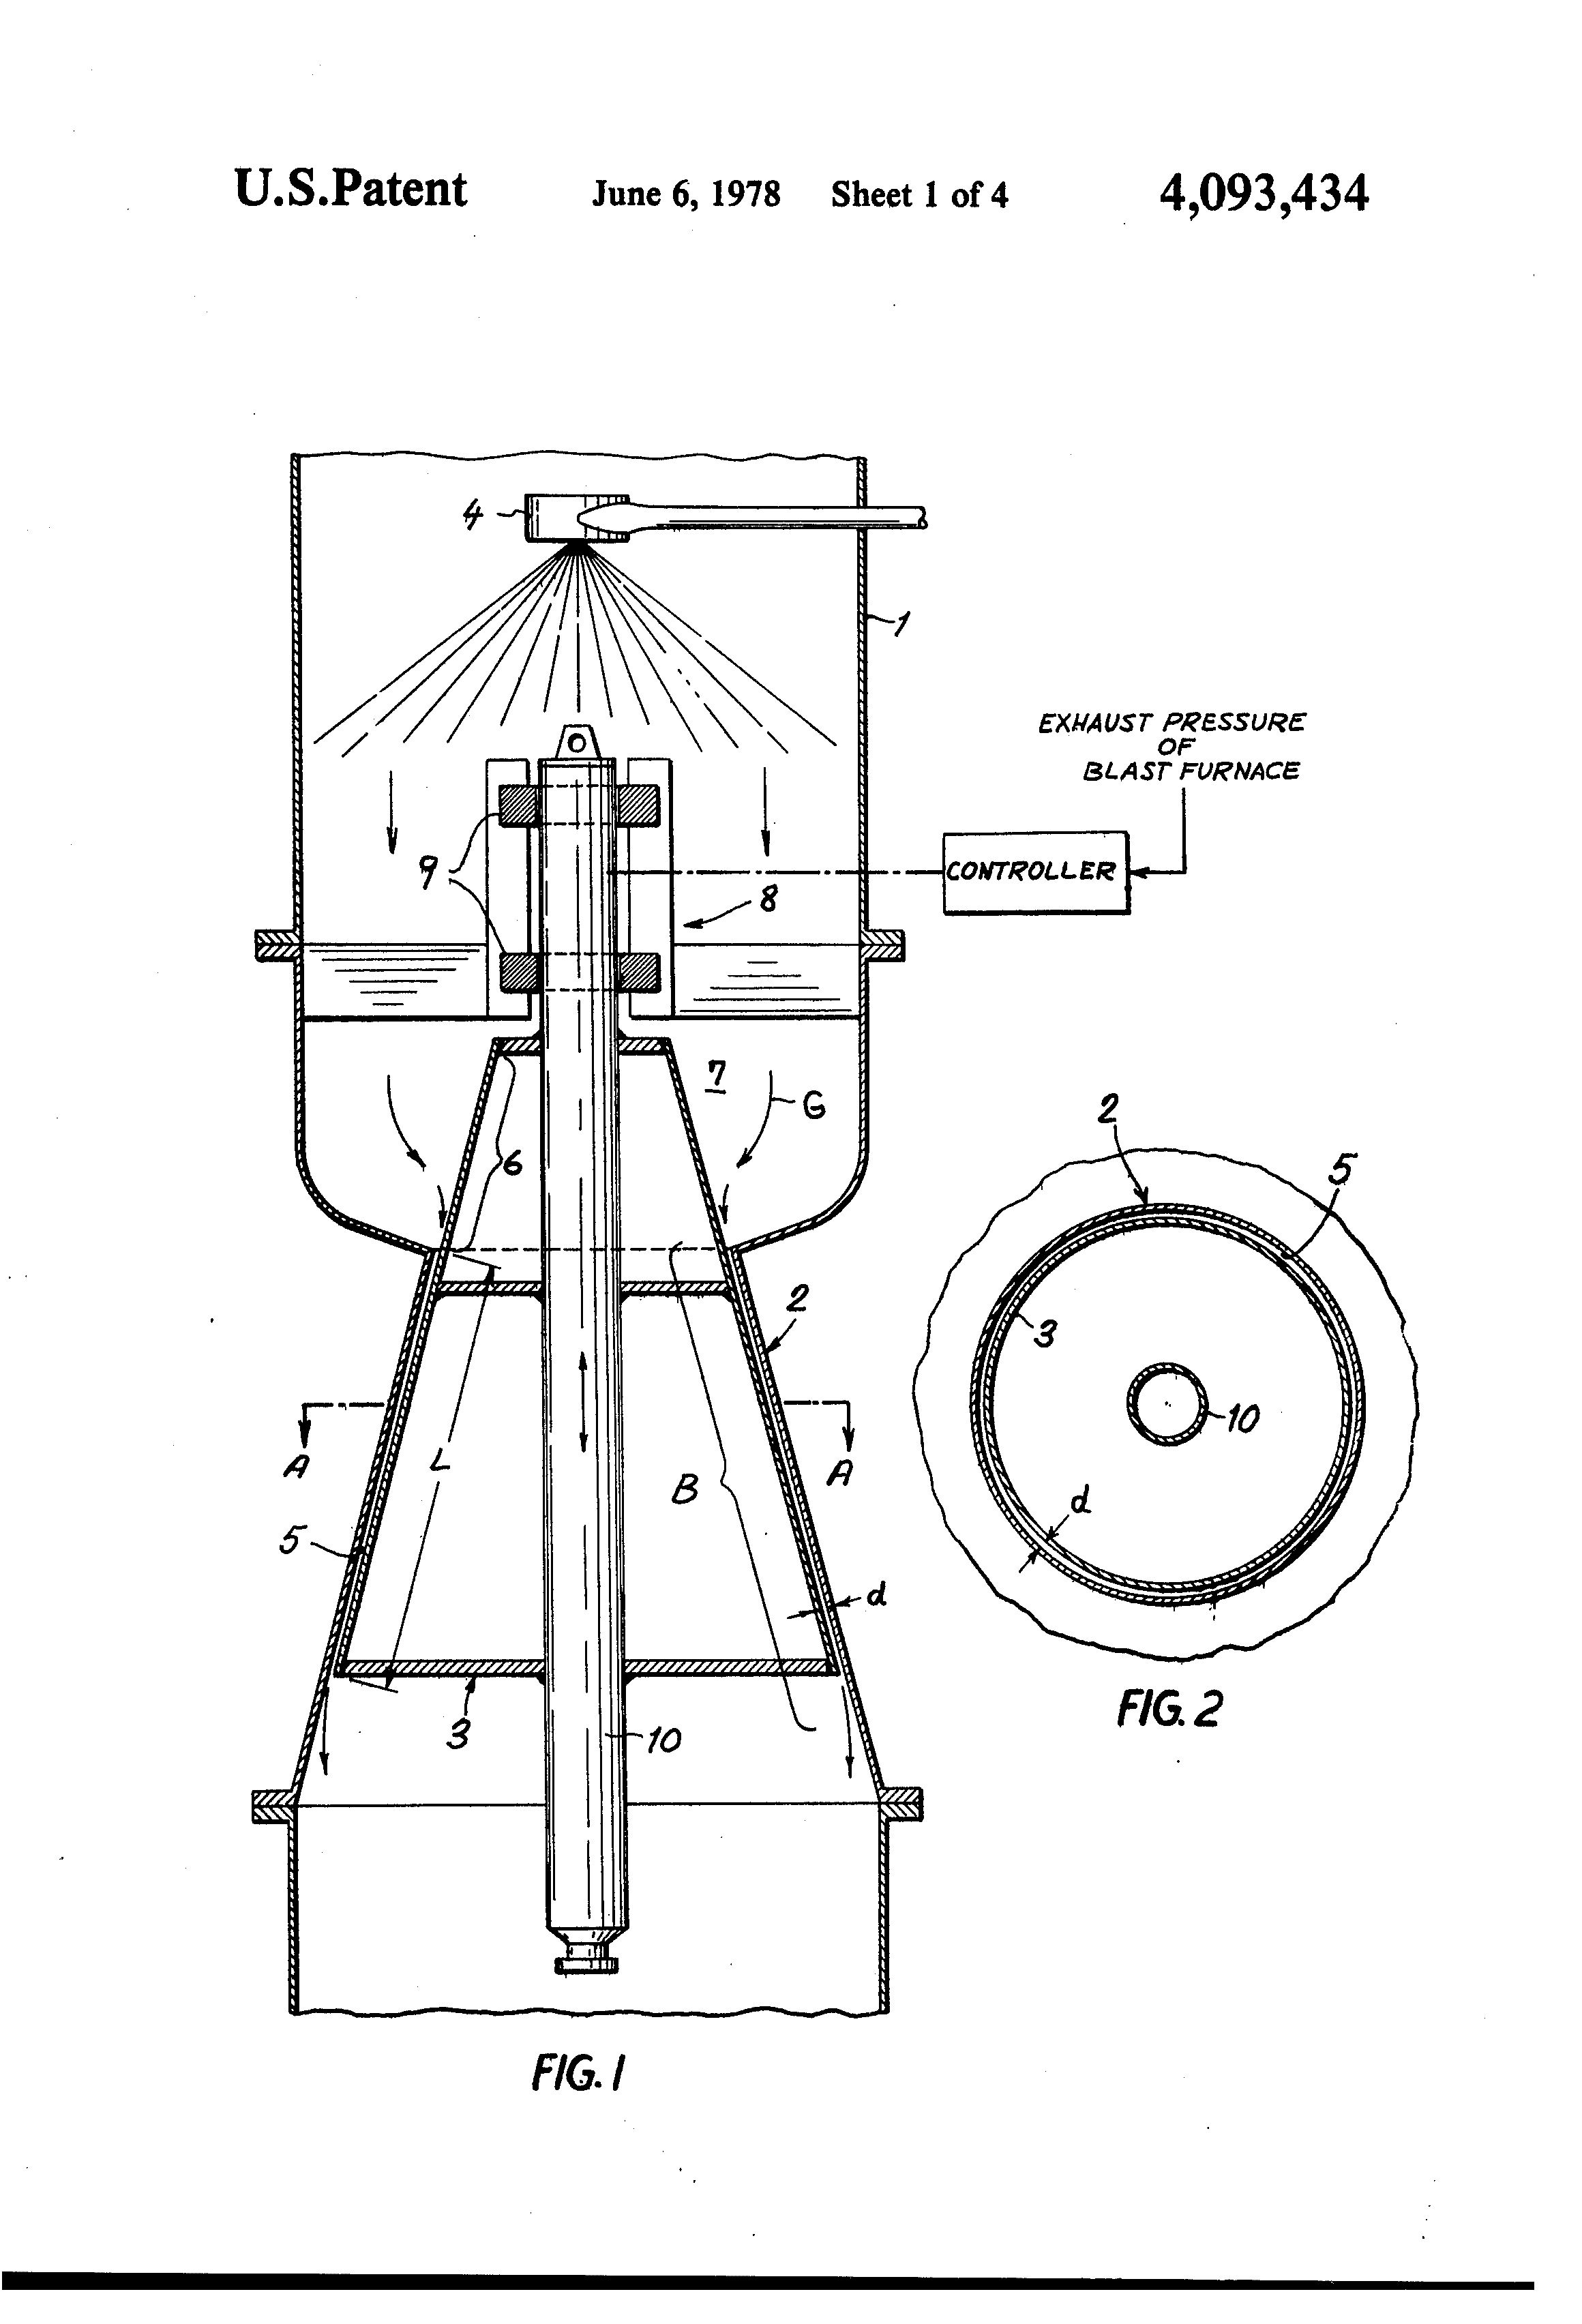 305717869 Thickness Measurement of Blast Furnace Staves with Curved Cooling Channel Using a Specially Designed Ultrasonic Probe also US4093434 together with 728 in addition US4133655 in addition Furnace 2C Cupola. on blast furnace cross section